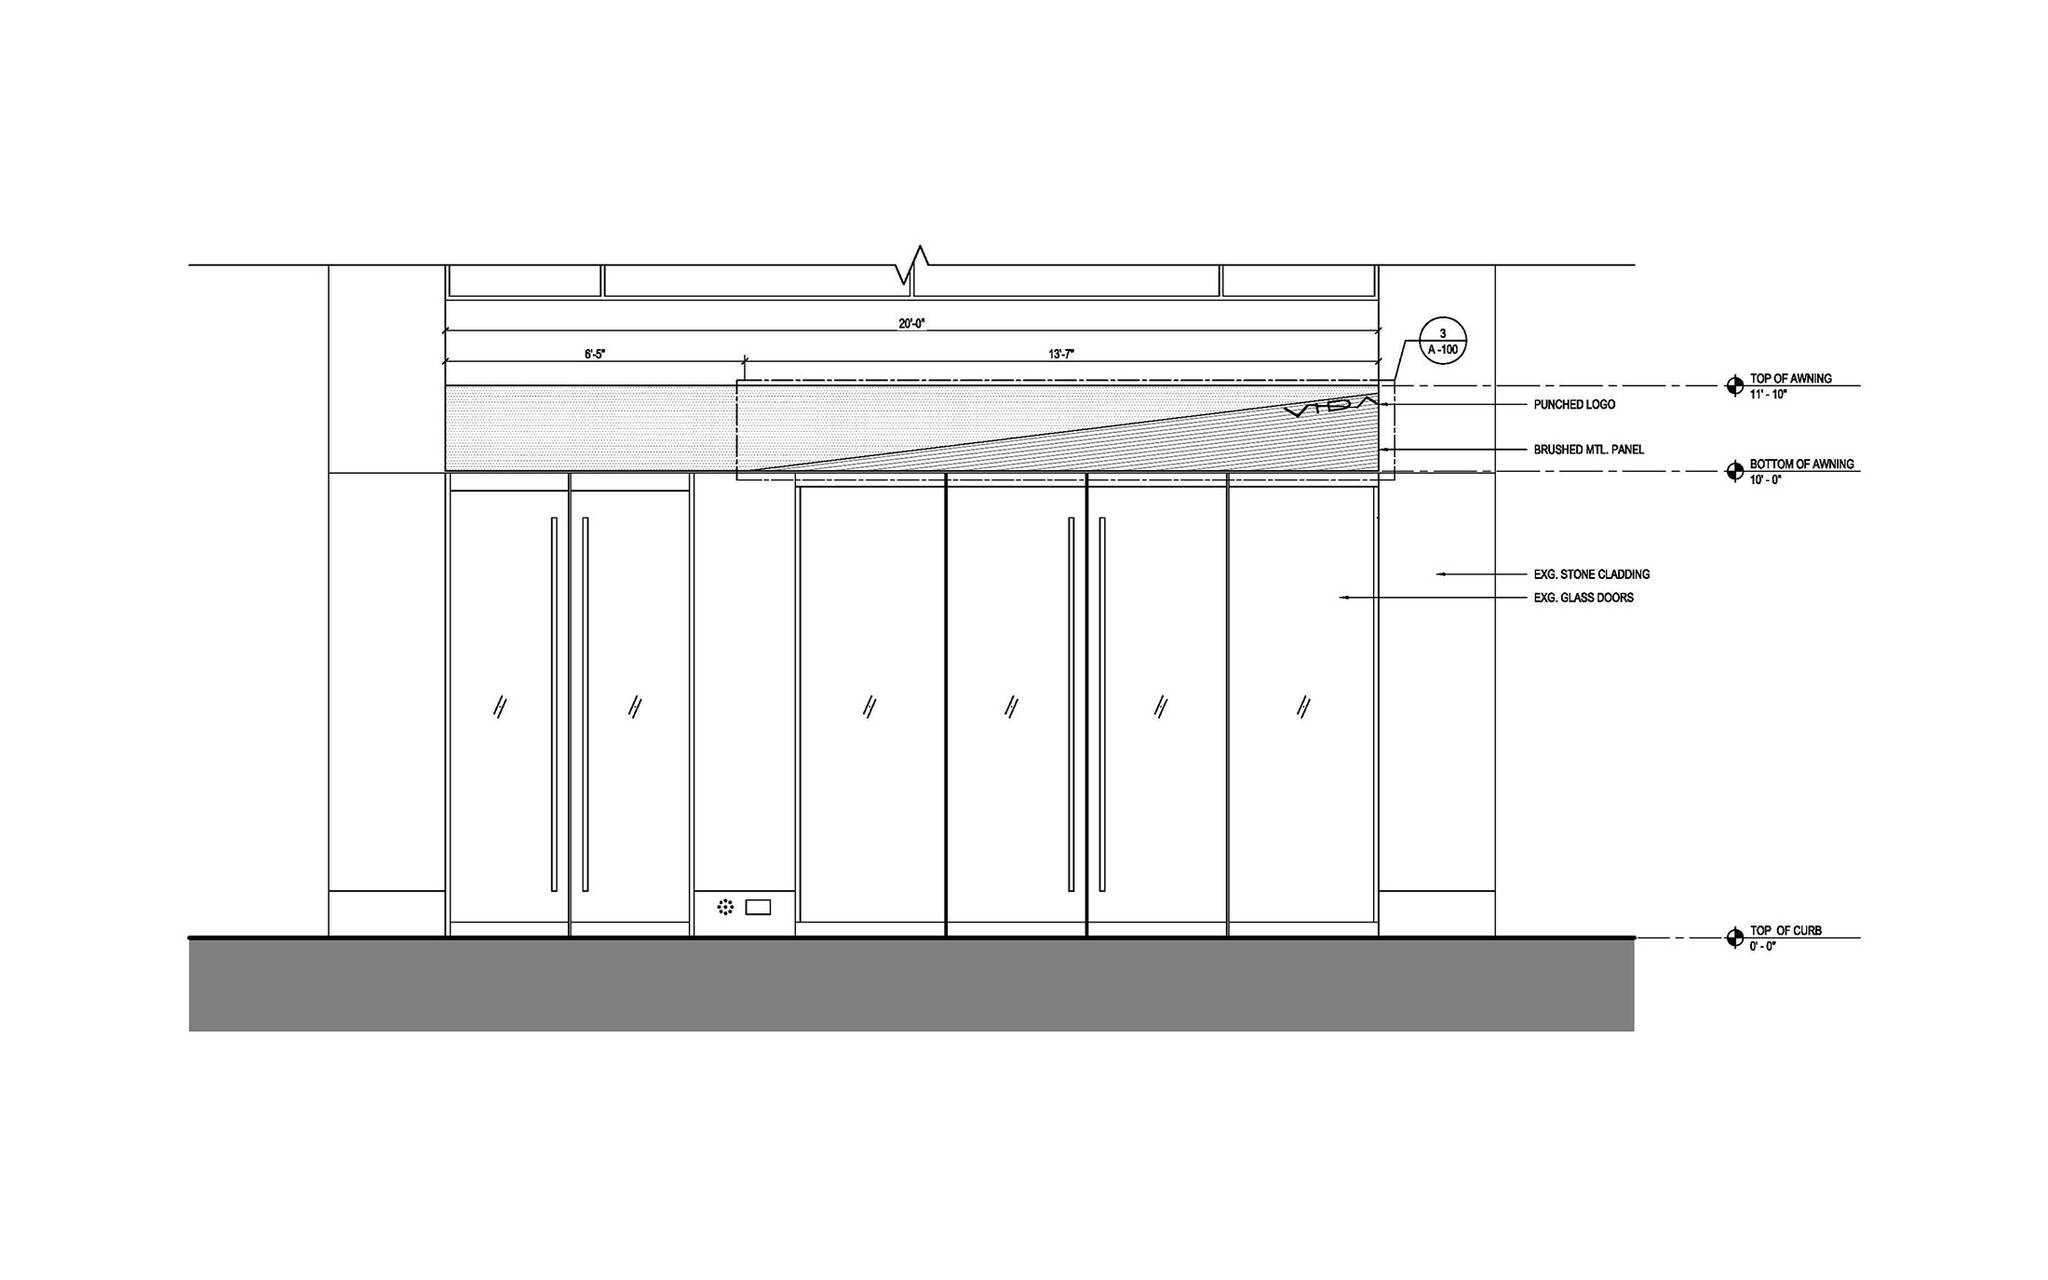 Front view plan of the Vida Shoes International canopy project for the shop located at 29 West 56th Street in Midtown, New York City designed by the architecture studio Danny Forster & Architecture